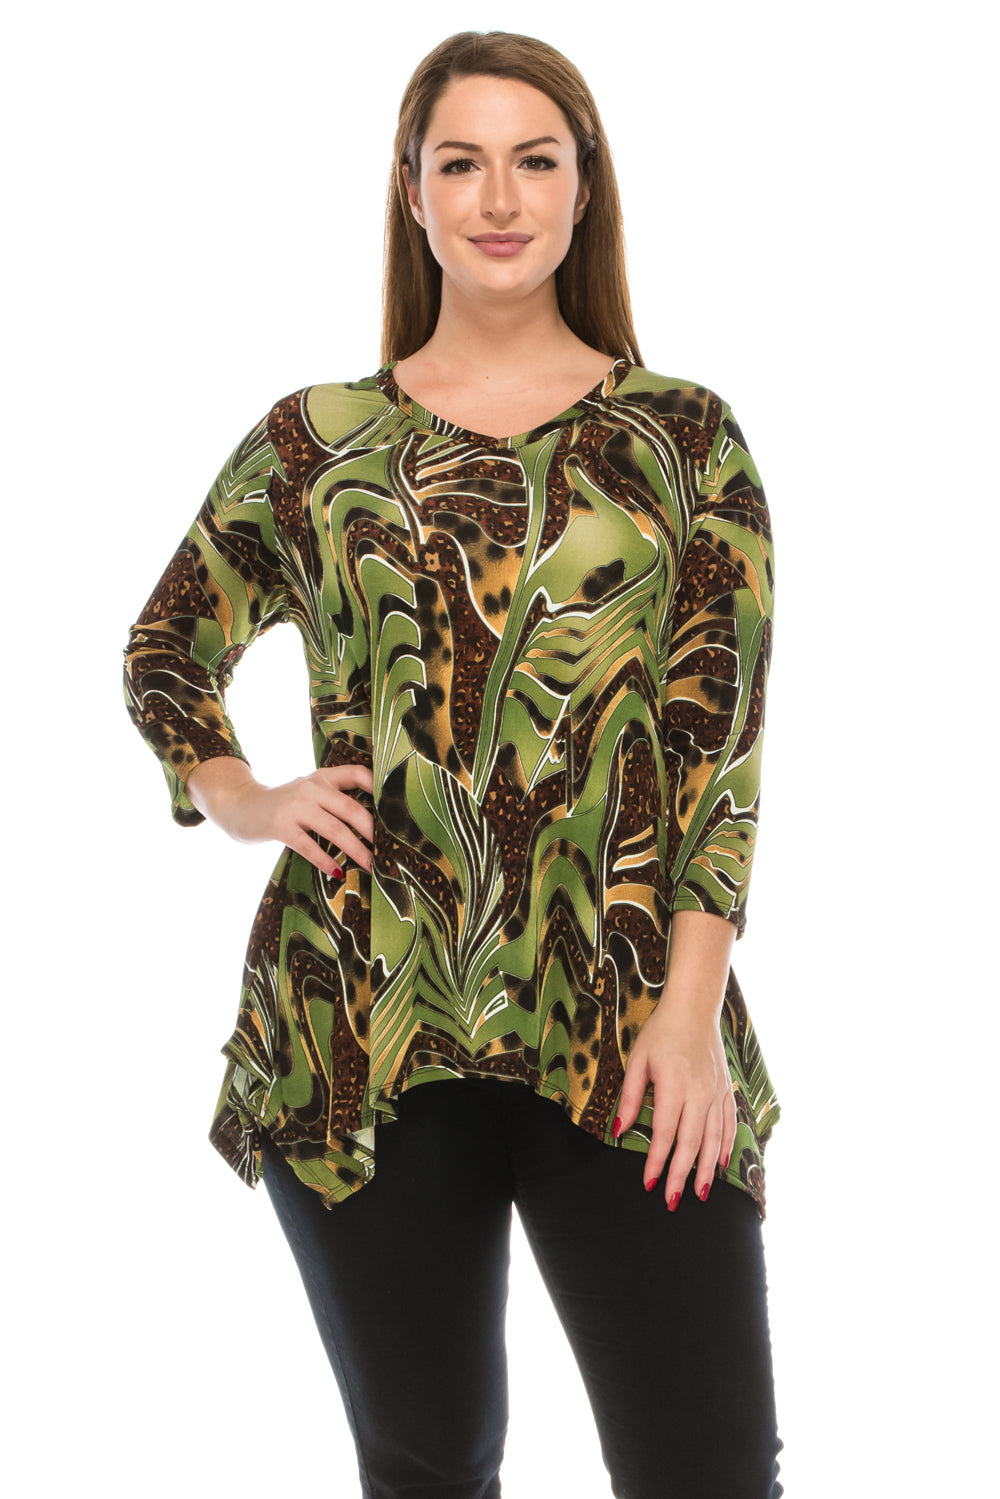 Jostar Women's Stretchy V-Neck Binding Top 3/4 Sleeve Print, 313BN-QP-W984 - Jostar Online